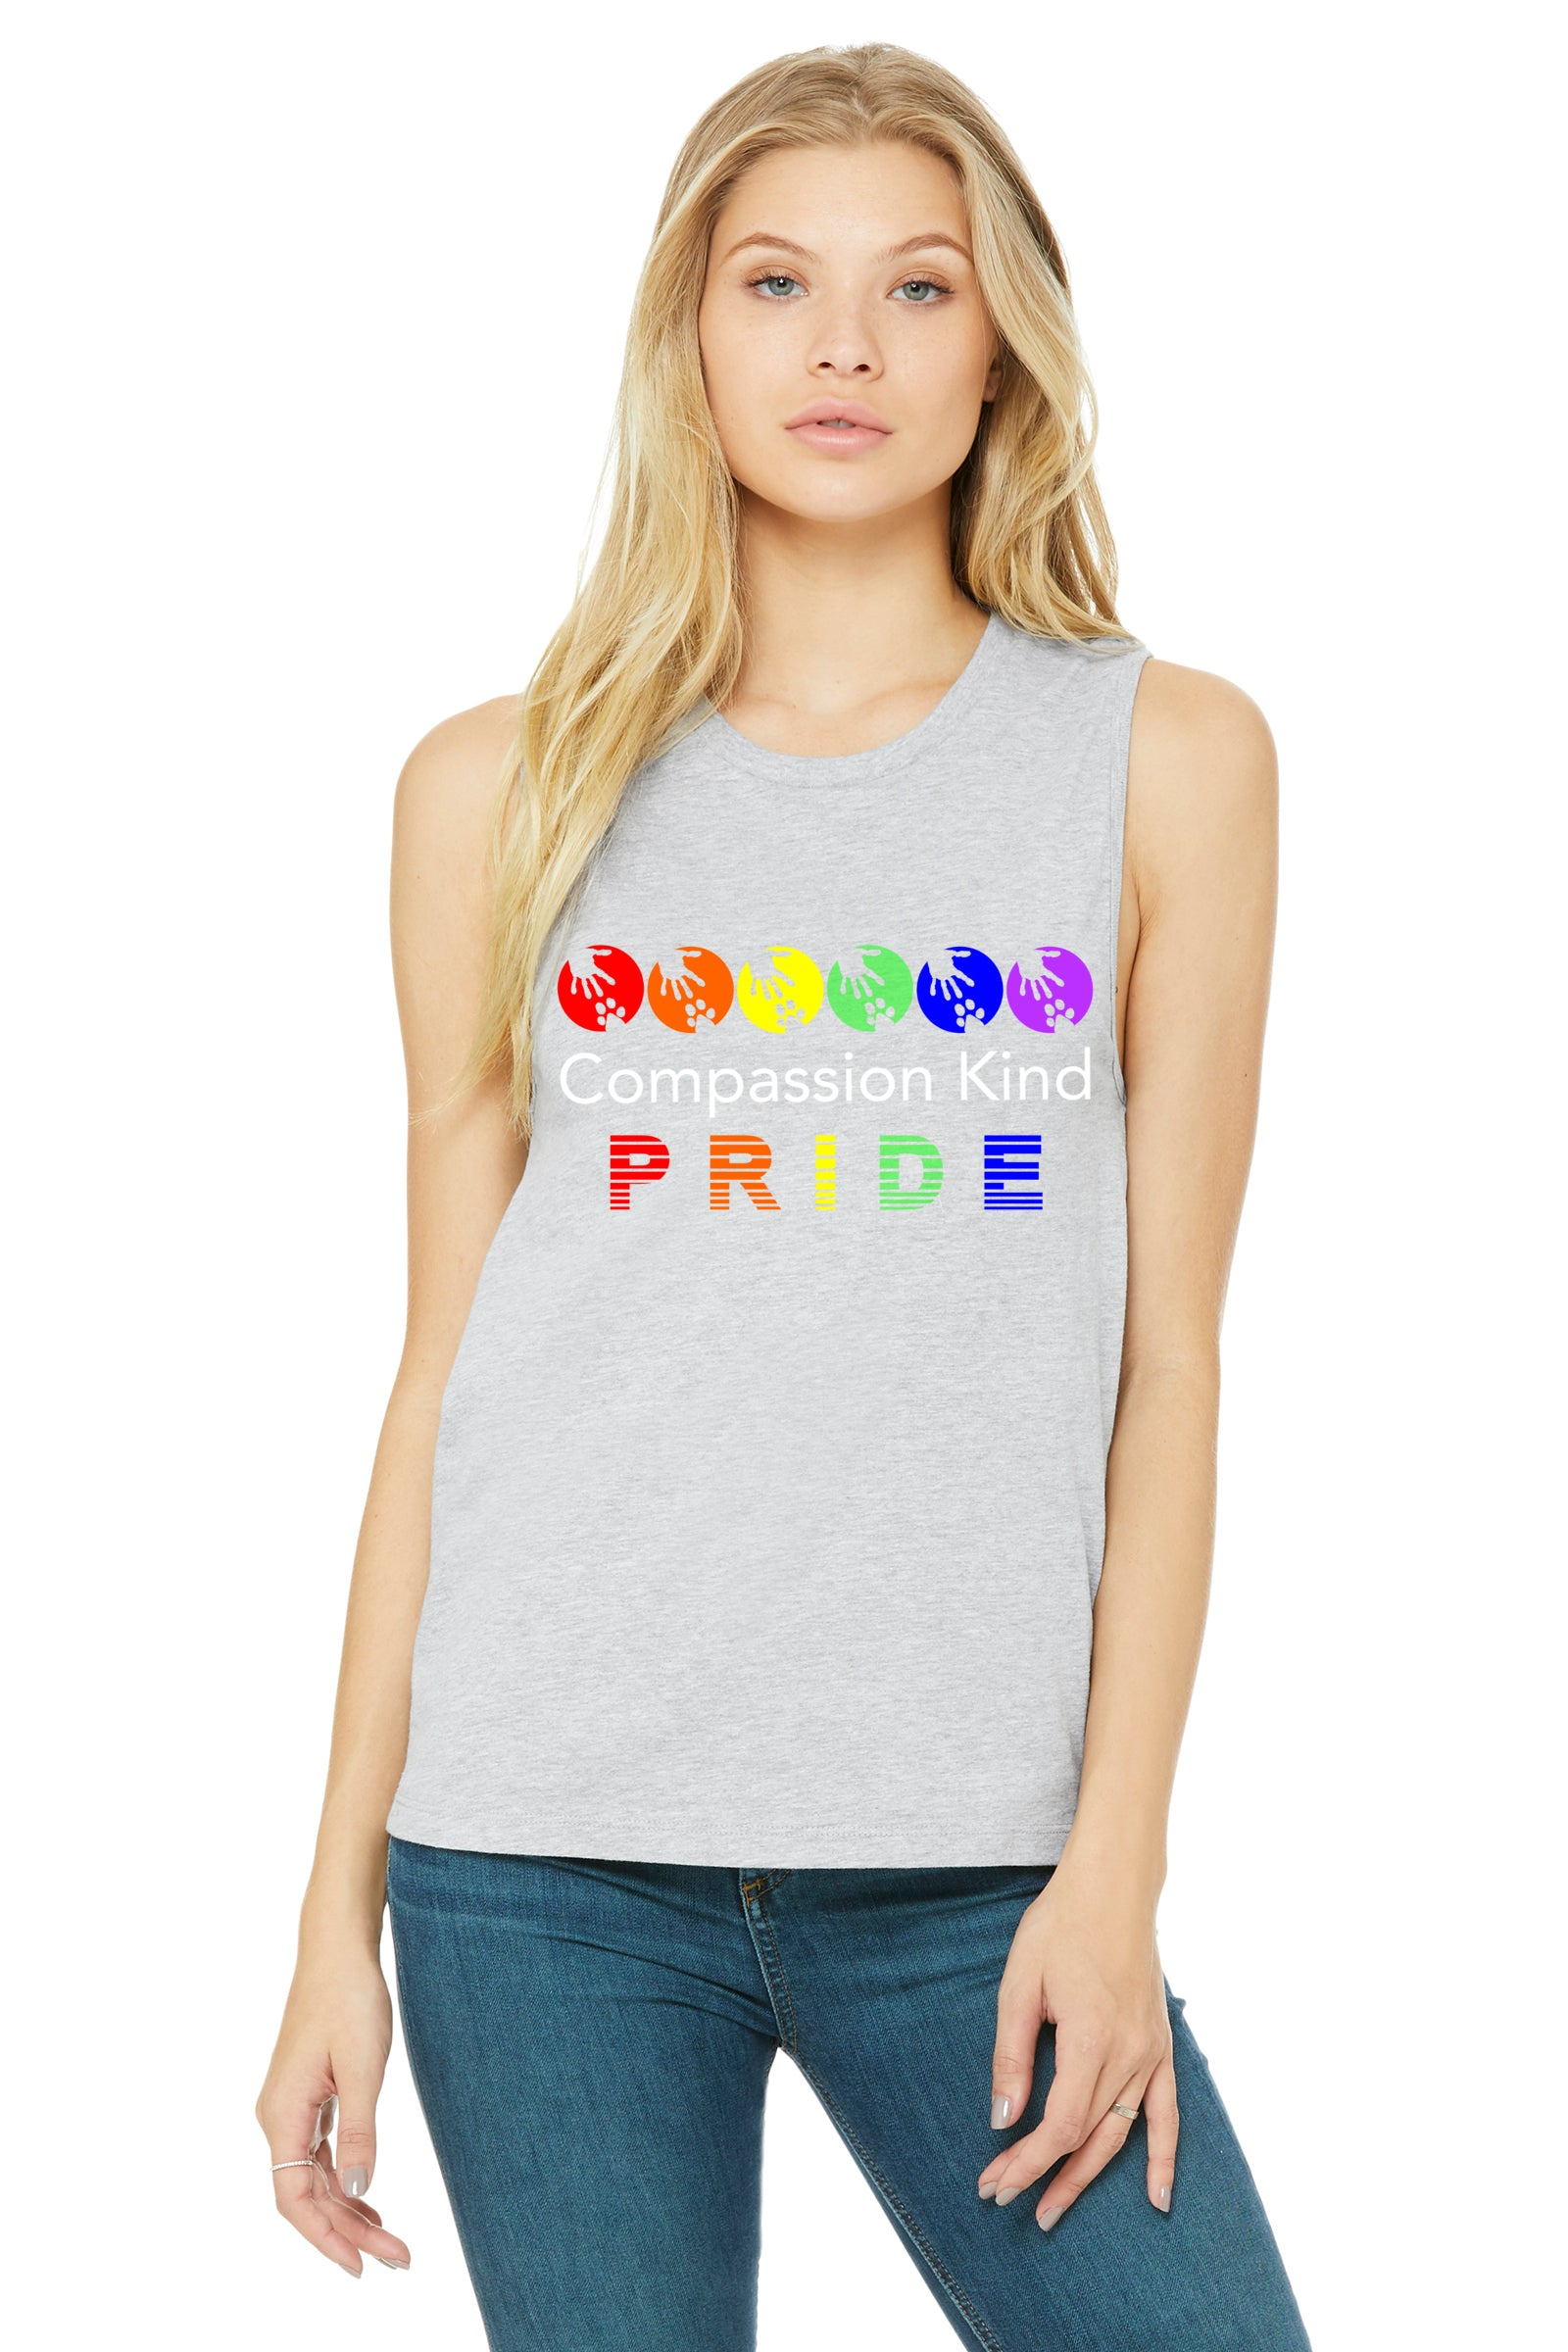 "Compassion Kind ""PRIDE"" Muscle Tank,Humane Apparel  - Humane Apparel"